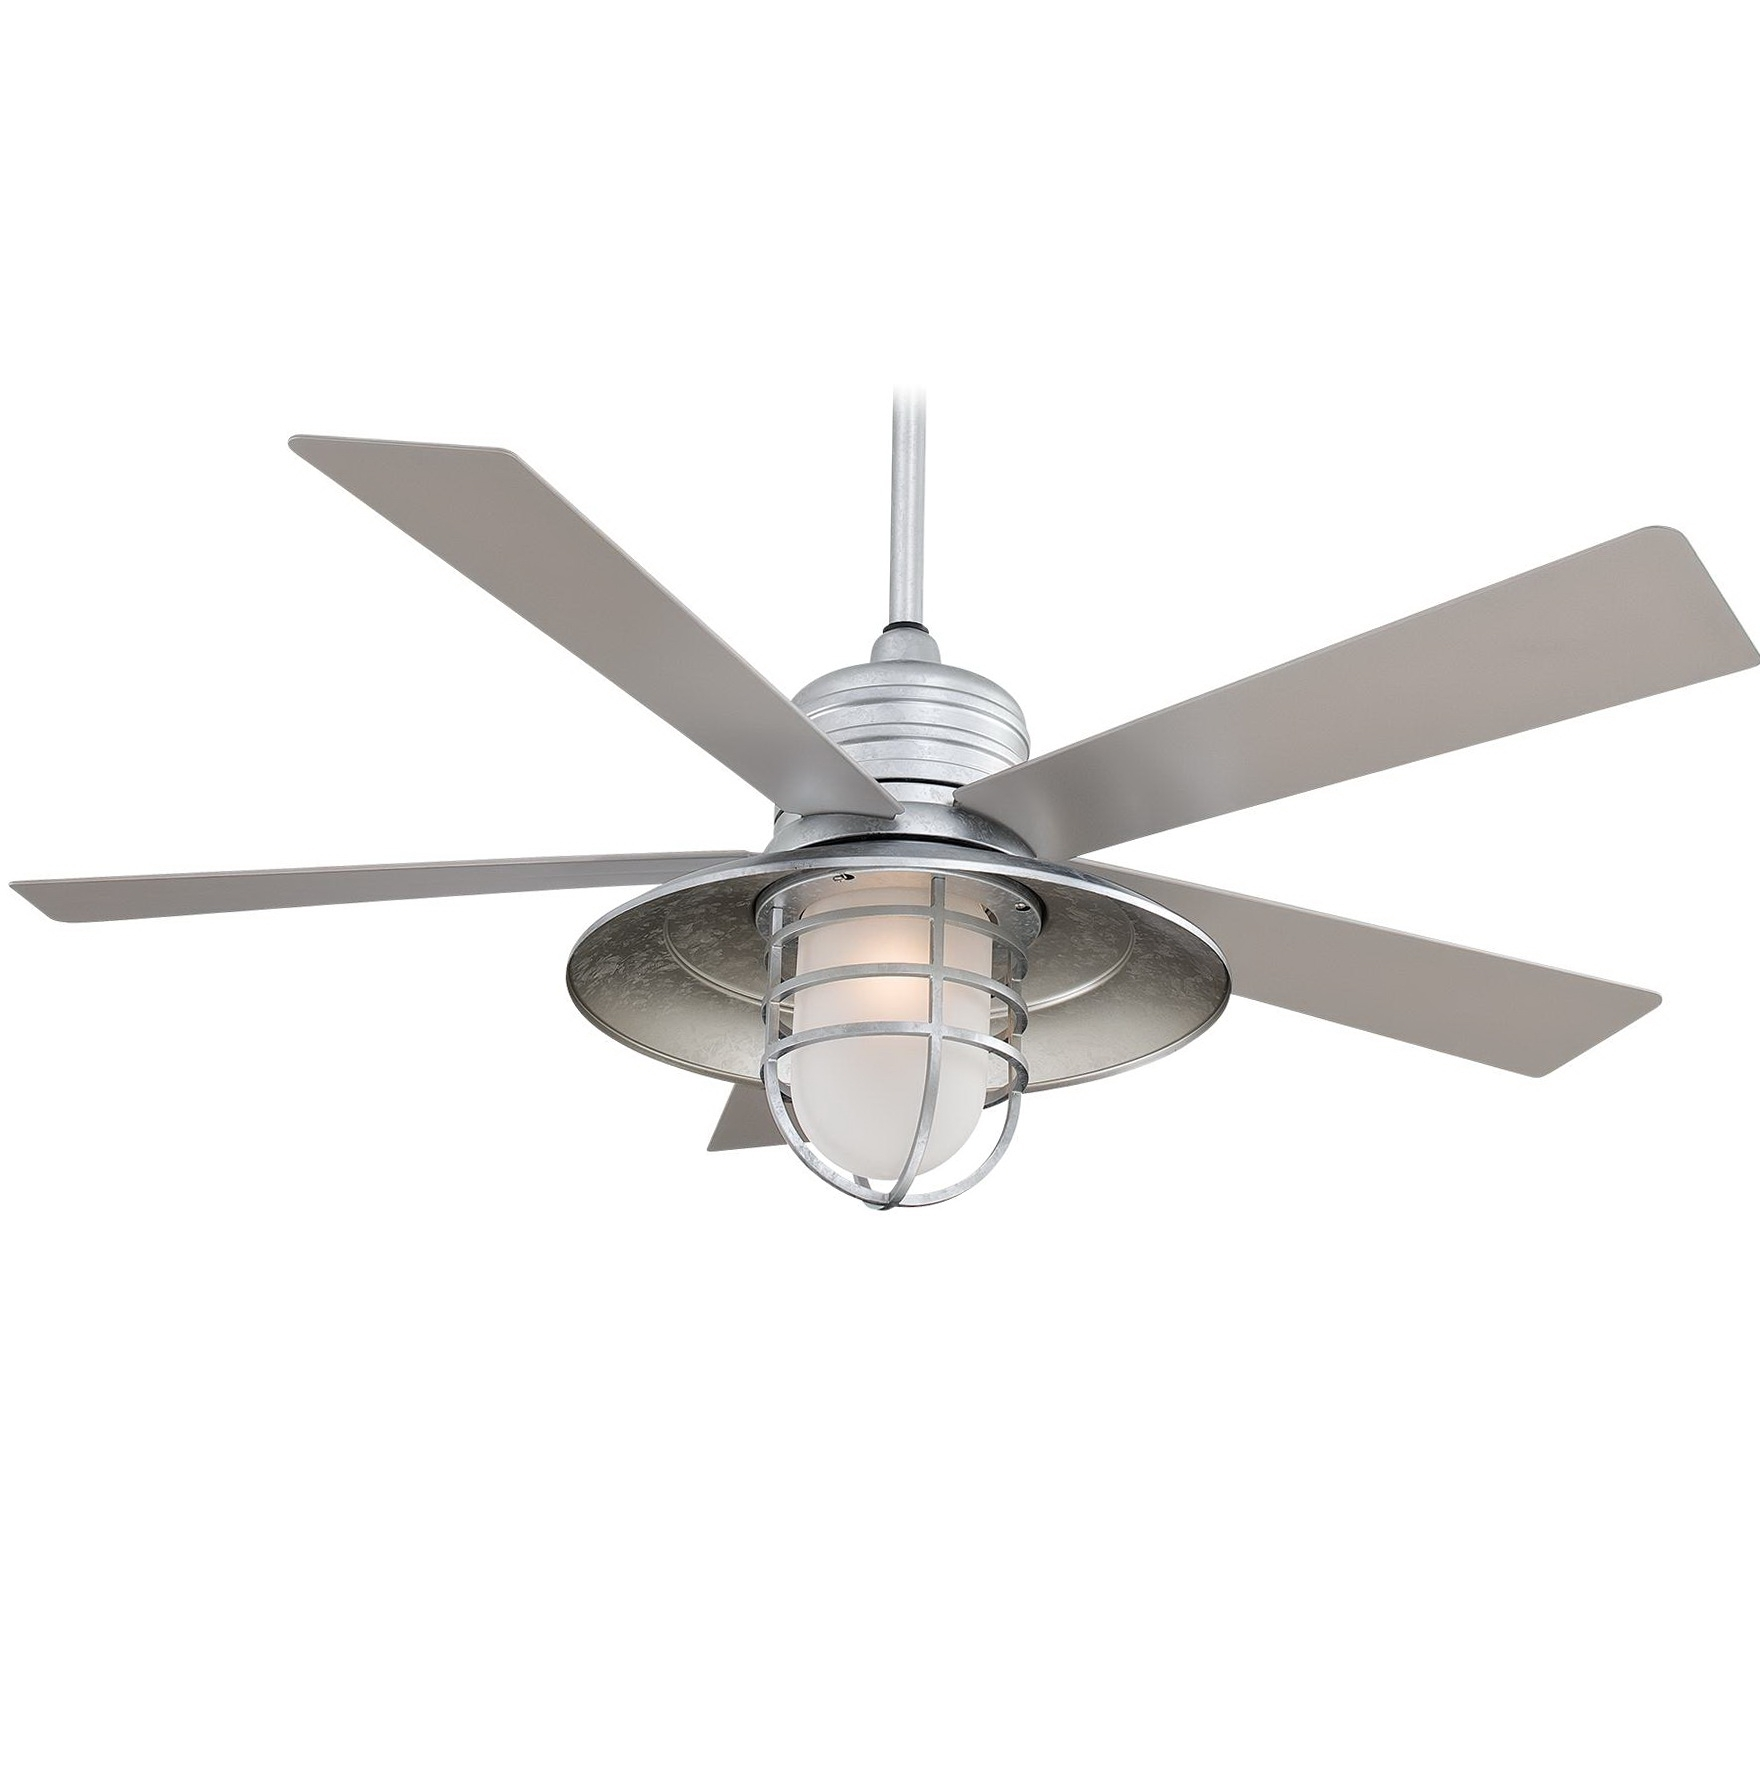 42 Outdoor Ceiling Fans With Light Kit Pertaining To Best And Newest Outdoor Ceiling Fan With Light Kit – Outdoor Lighting Ideas (Gallery 13 of 20)